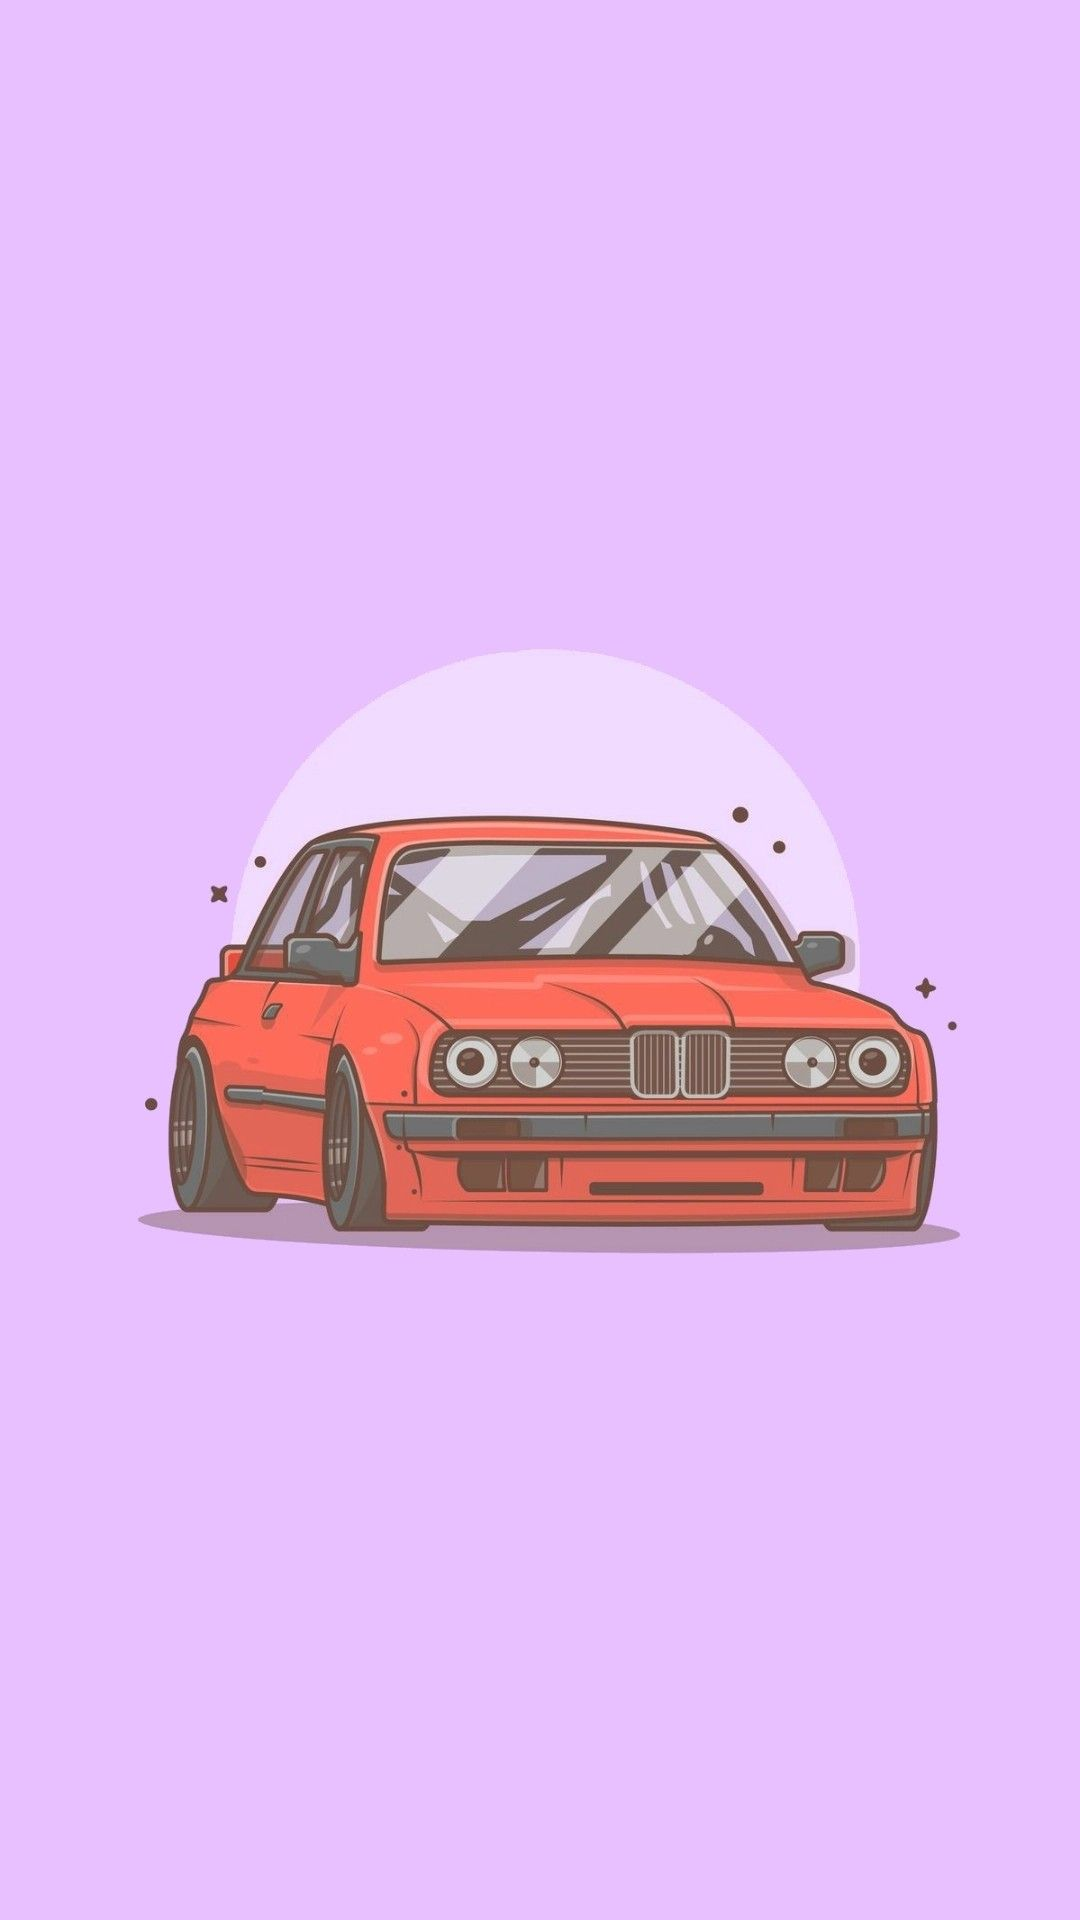 Pin By Saad Sultan On ستكر السيارات Cartoon Wallpaper Car